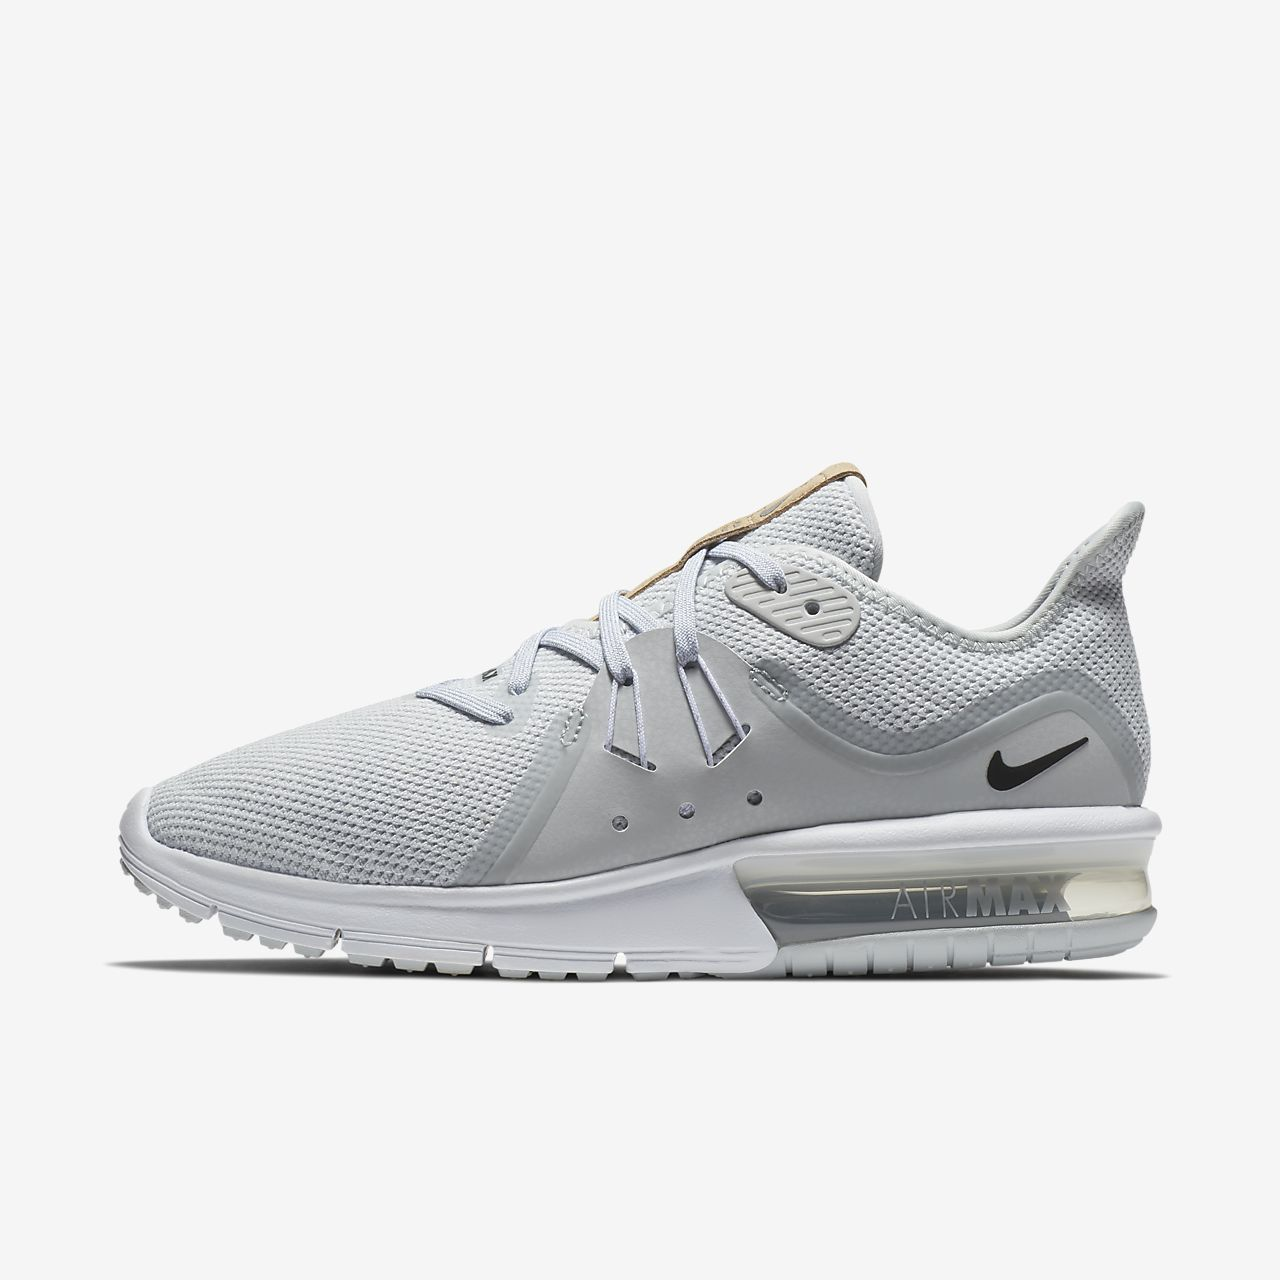 huge discount 152f3 f36c1 ... Calzado para mujer Nike Air Max Sequent 3